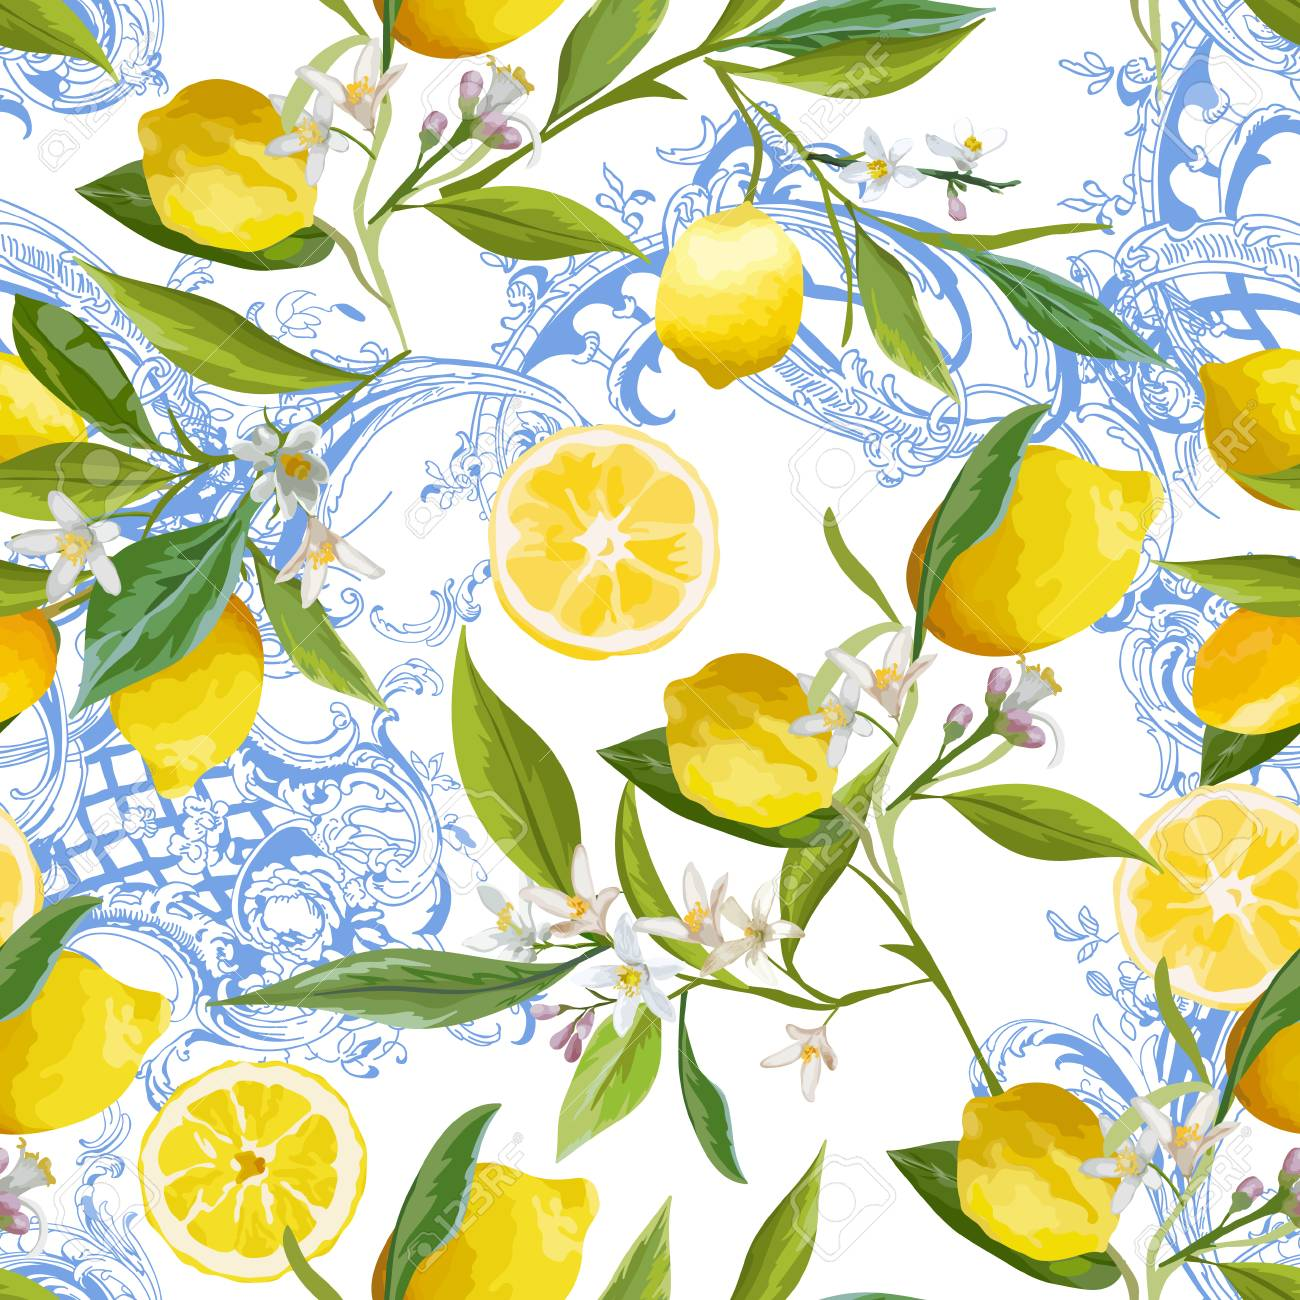 Seamless Pattern With Vintage Barocco Design With Yellow Lemon